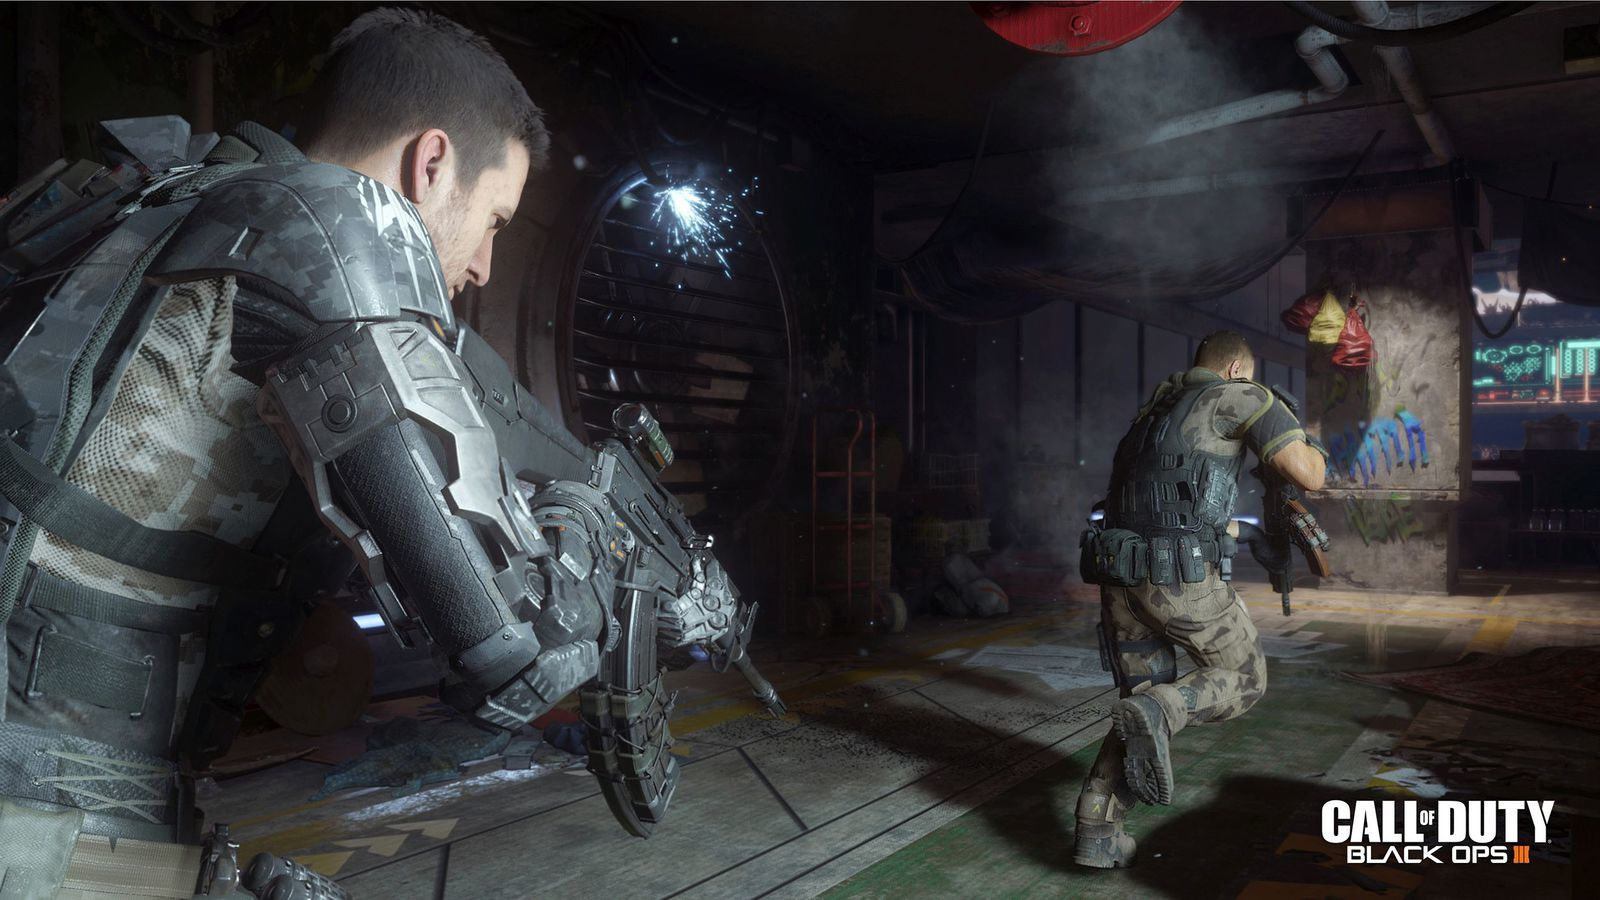 Call of Duty: Black Ops III devient une exclu Sony au Japon ?